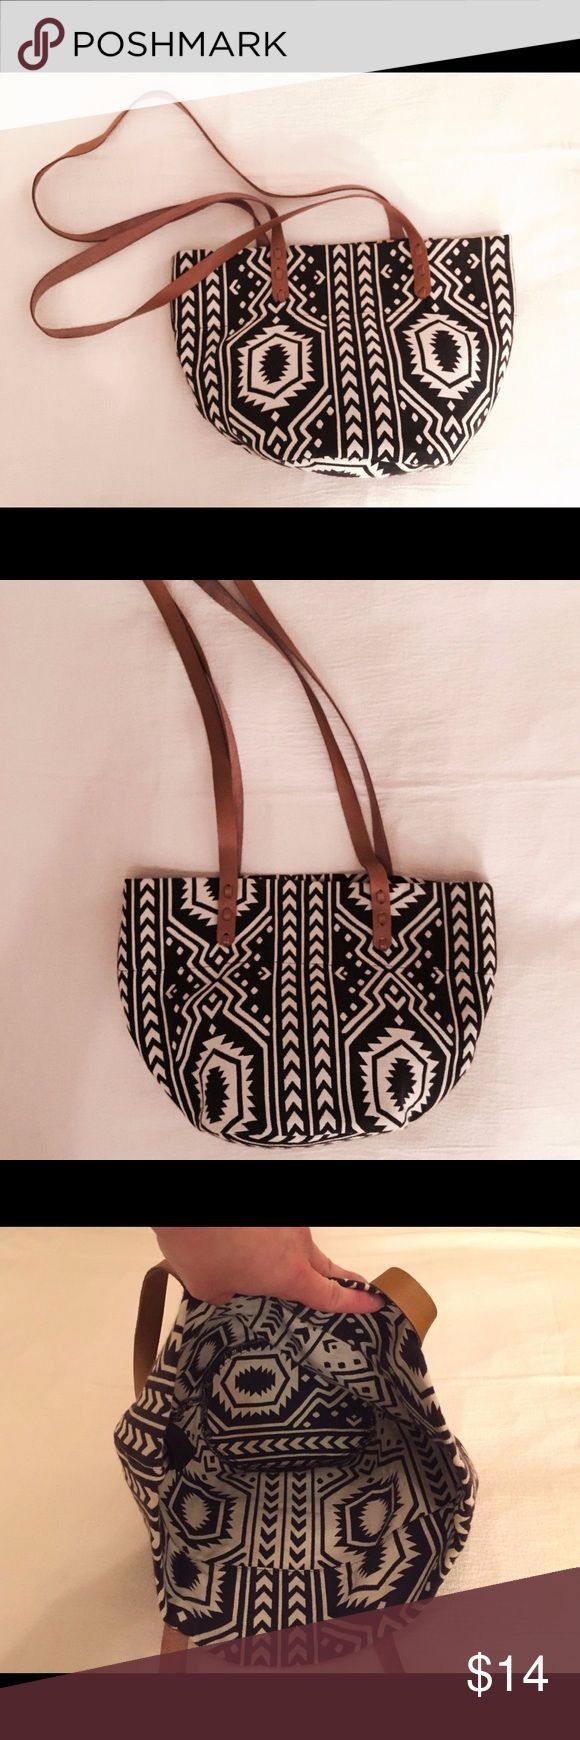 ❤️H&M DIVIDED Black White Ikat Aztec Tote Bag❤️ ❤️H&M DIVIDED Black & White Ikat Aztec Shoulder Tote Bag❤️ 